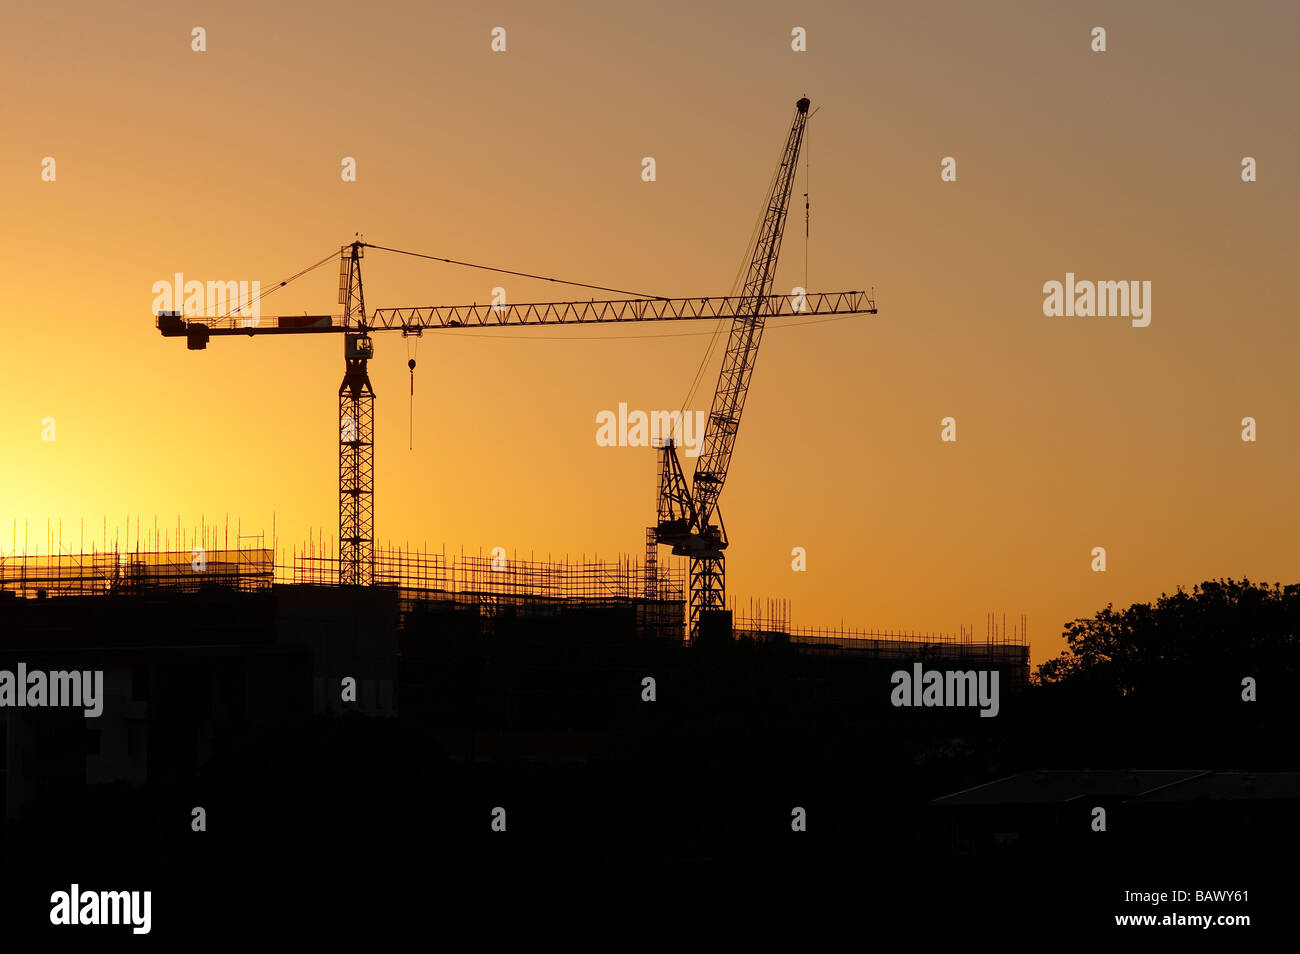 Tower Cranes silhouetted in sunrise - Stock Image